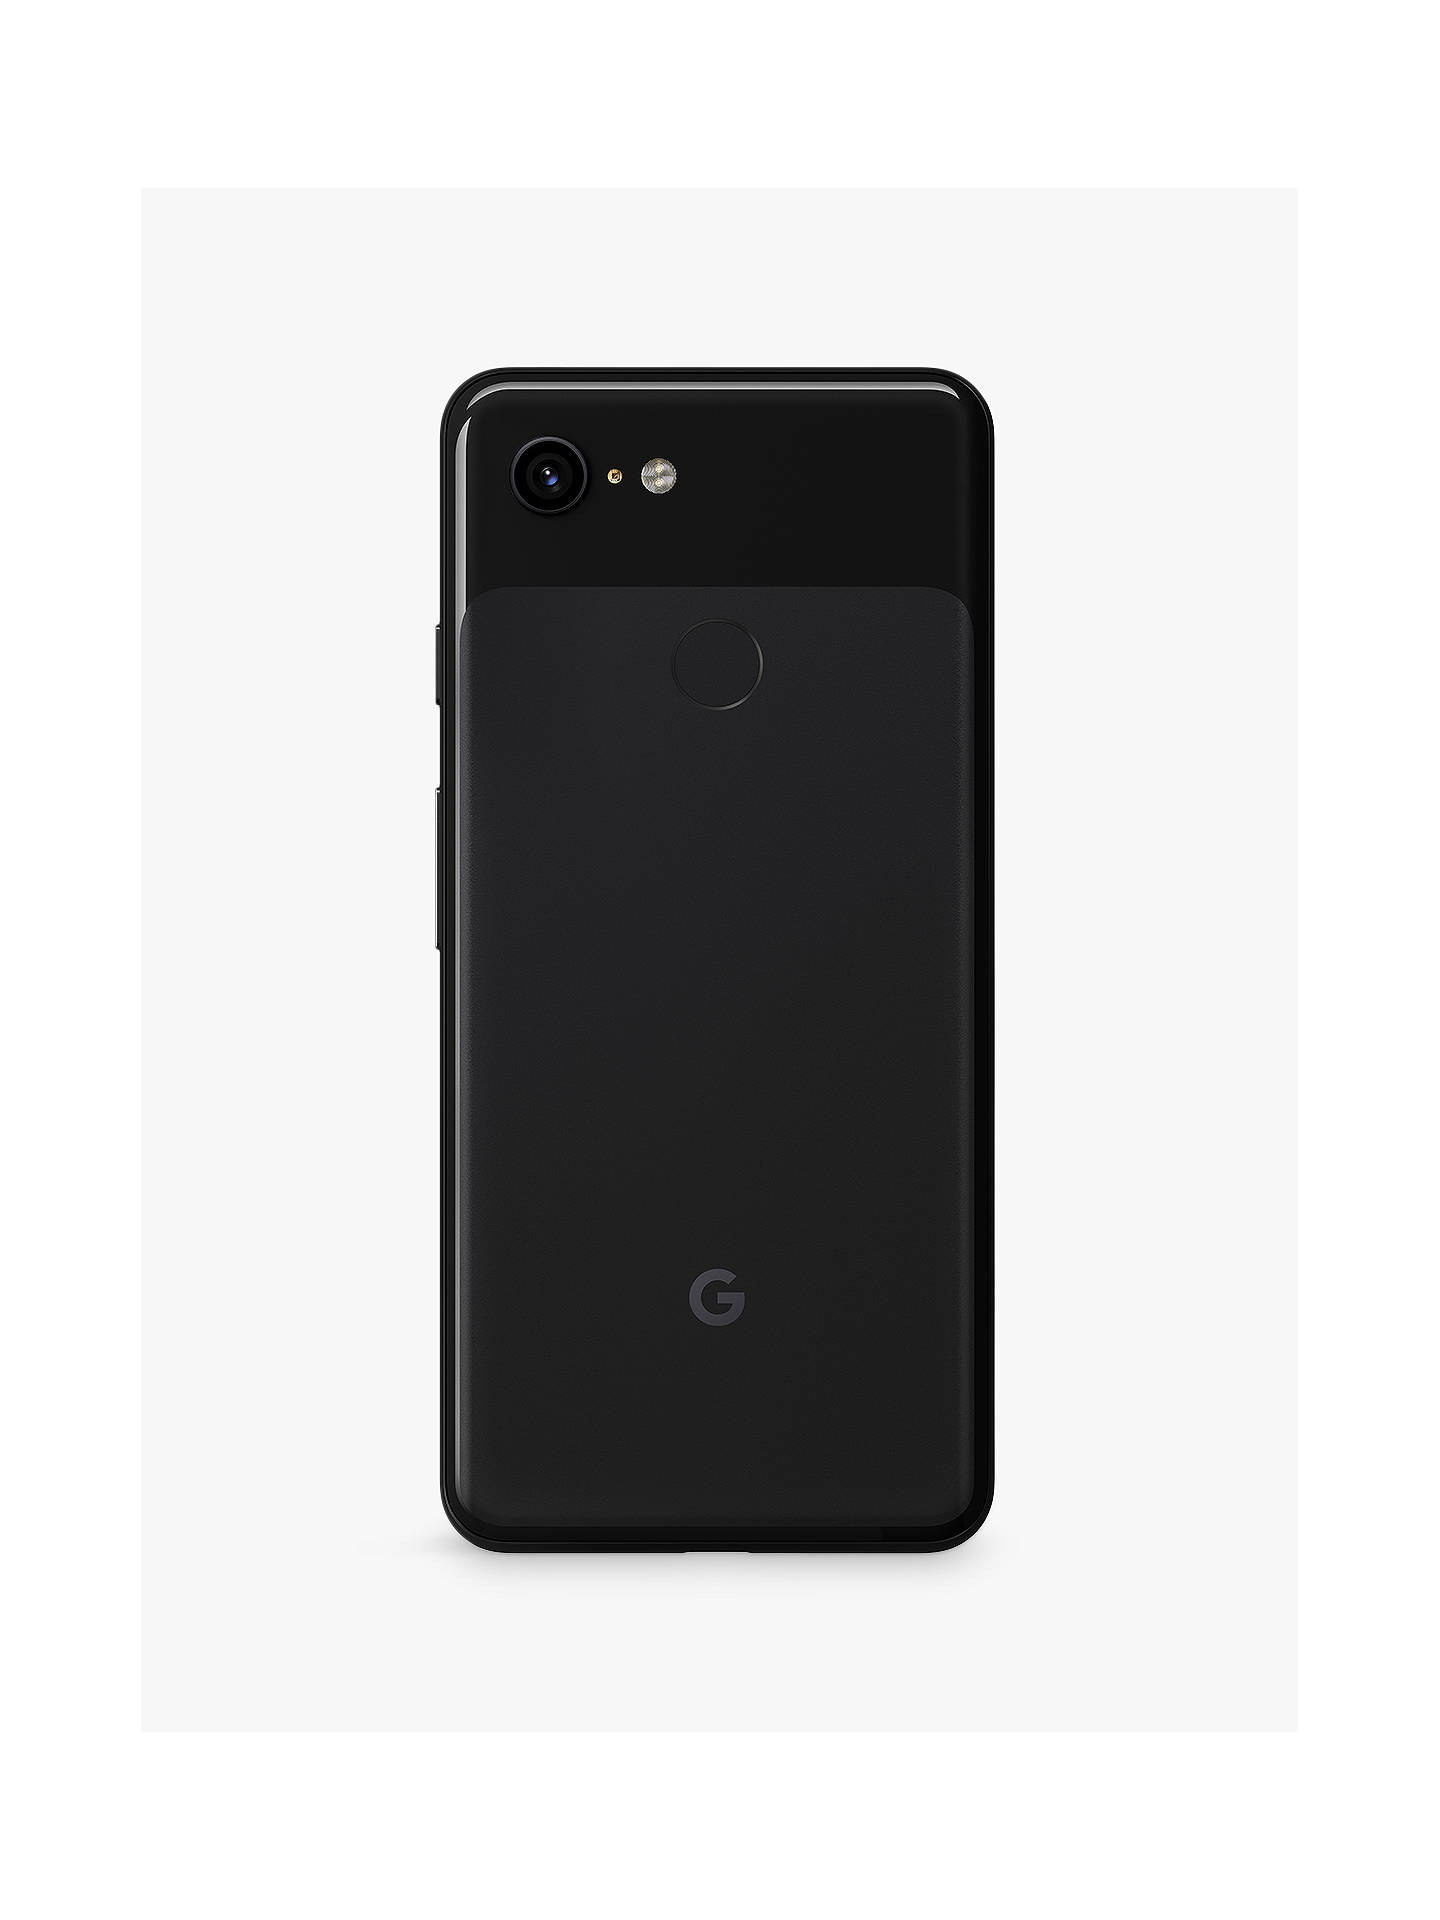 "Buy Google Pixel 3 Smartphone, Android, 5.5"", 4G LTE, SIM Free, 64GB, Just Black Online at johnlewis.com"